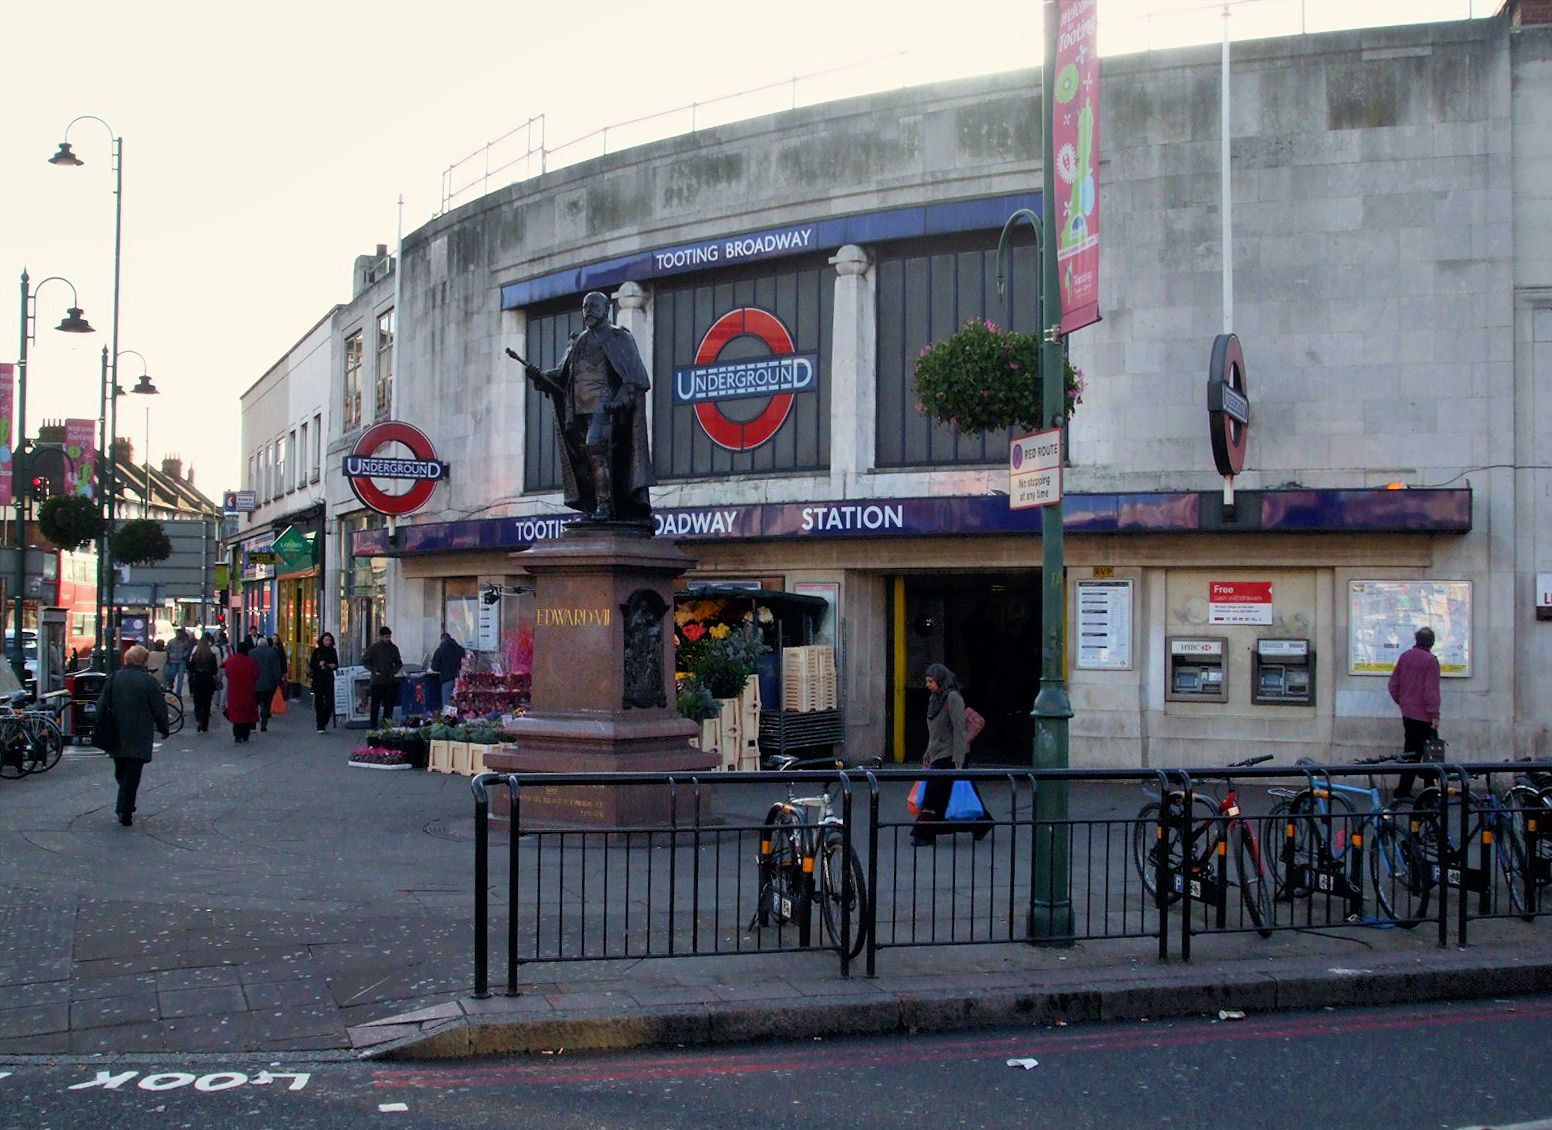 Tooting_Broadway_stn_building